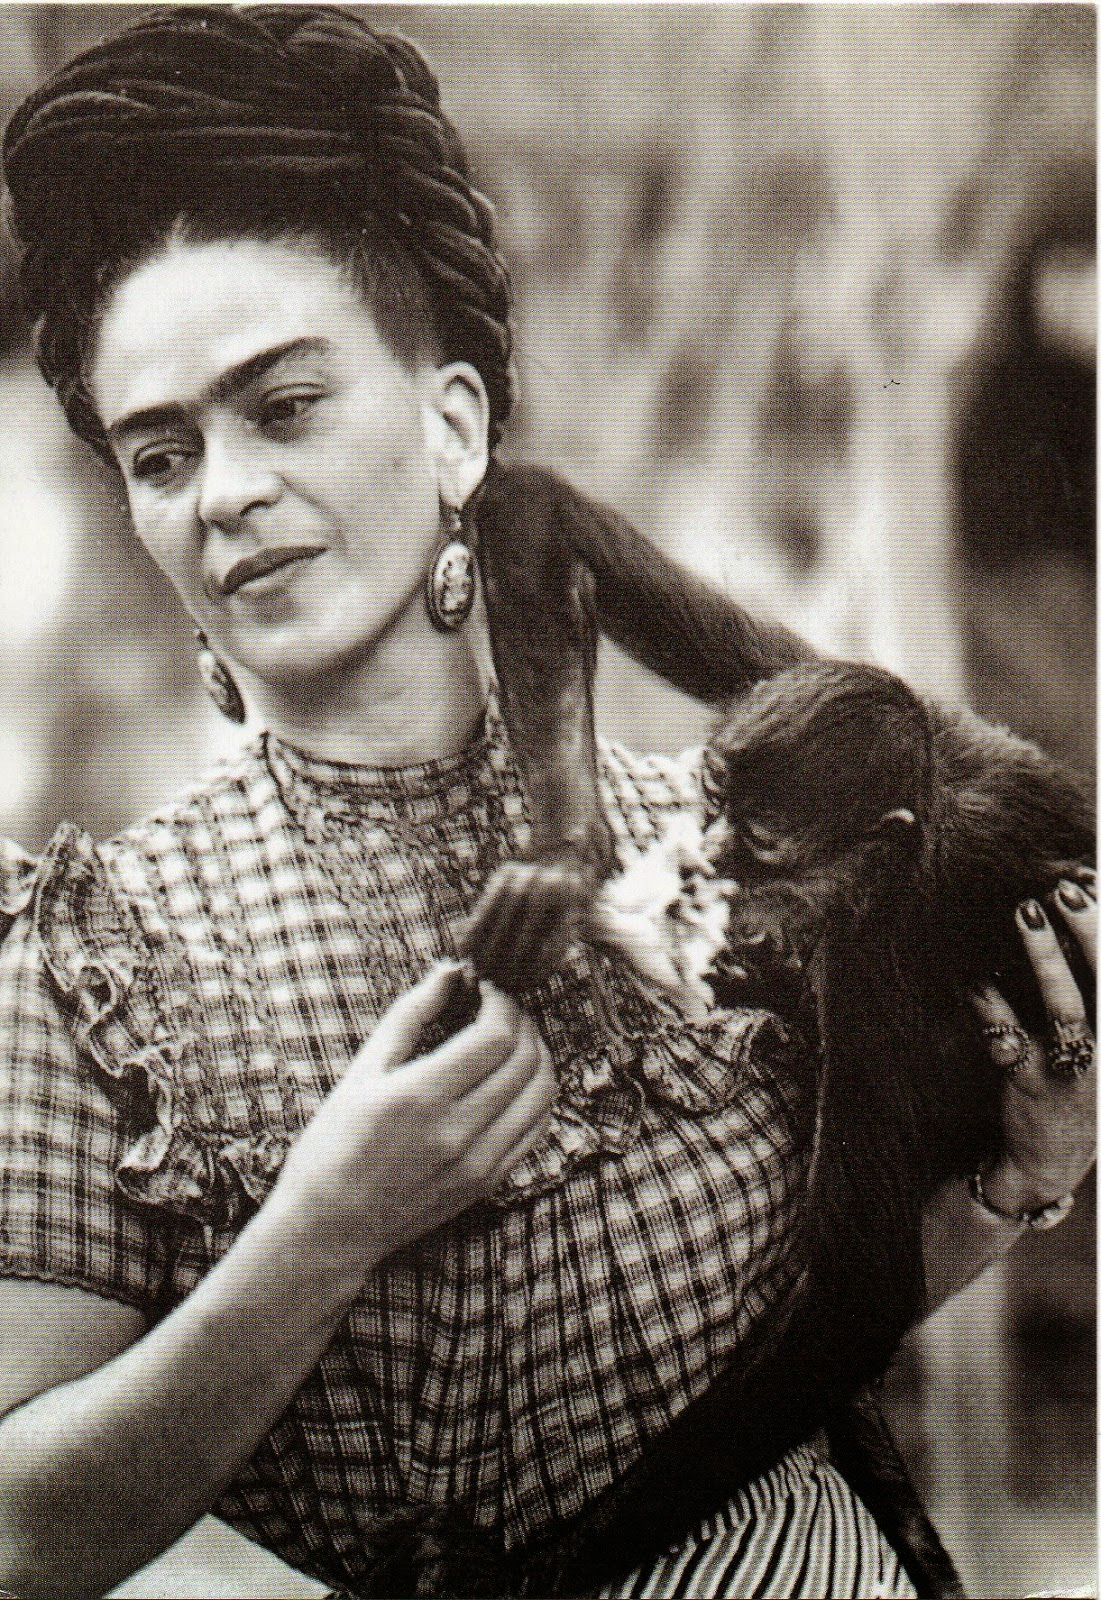 Frida Kahlo Pinturas Biografia De Frida Kahlo Video Search Engine At Search